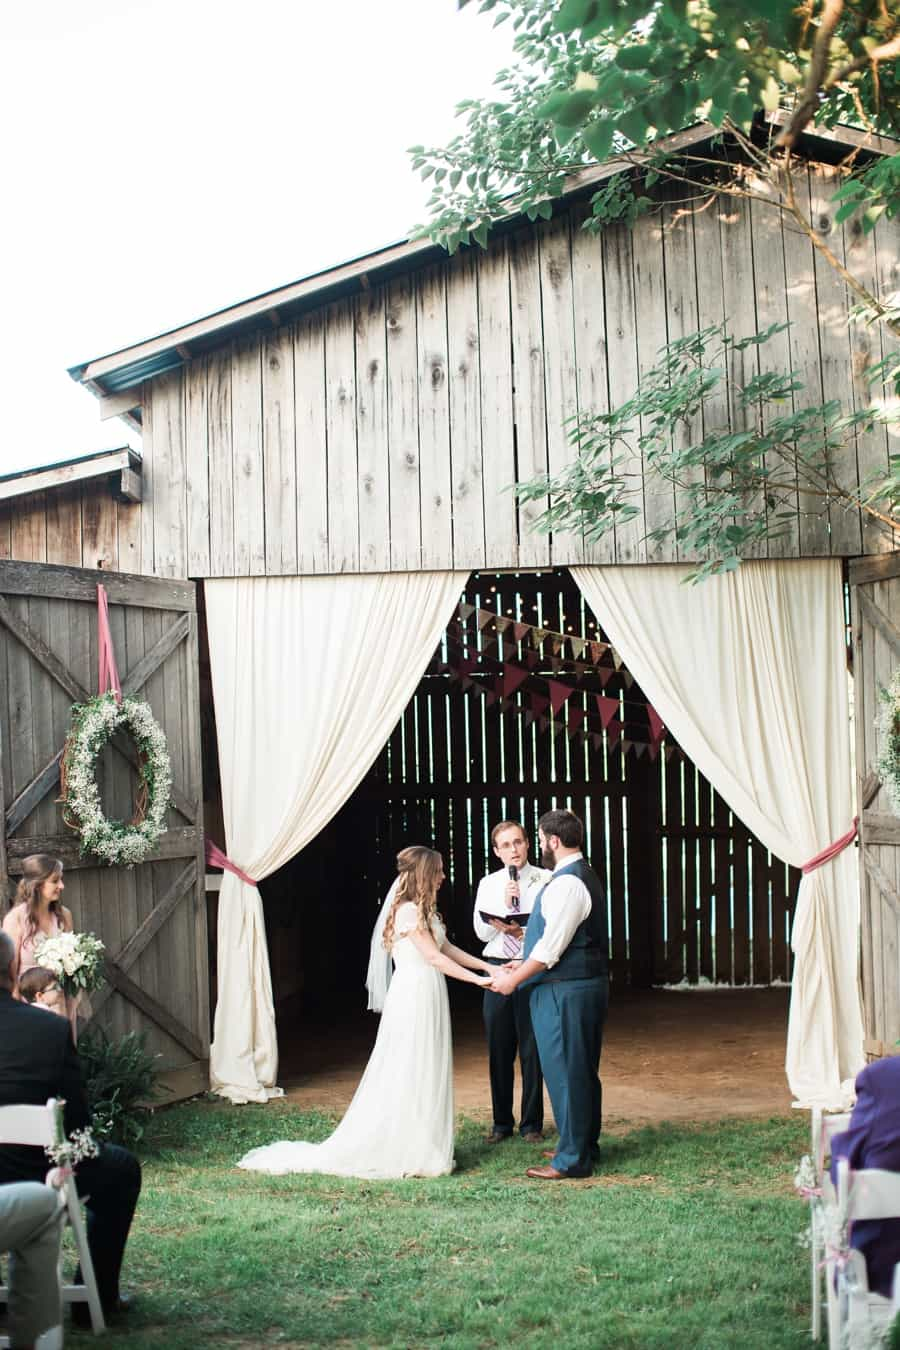 Stephanie Tylers Chattanooga Backyard Barn Wedding Chattanooga Wedding Photographer_0017